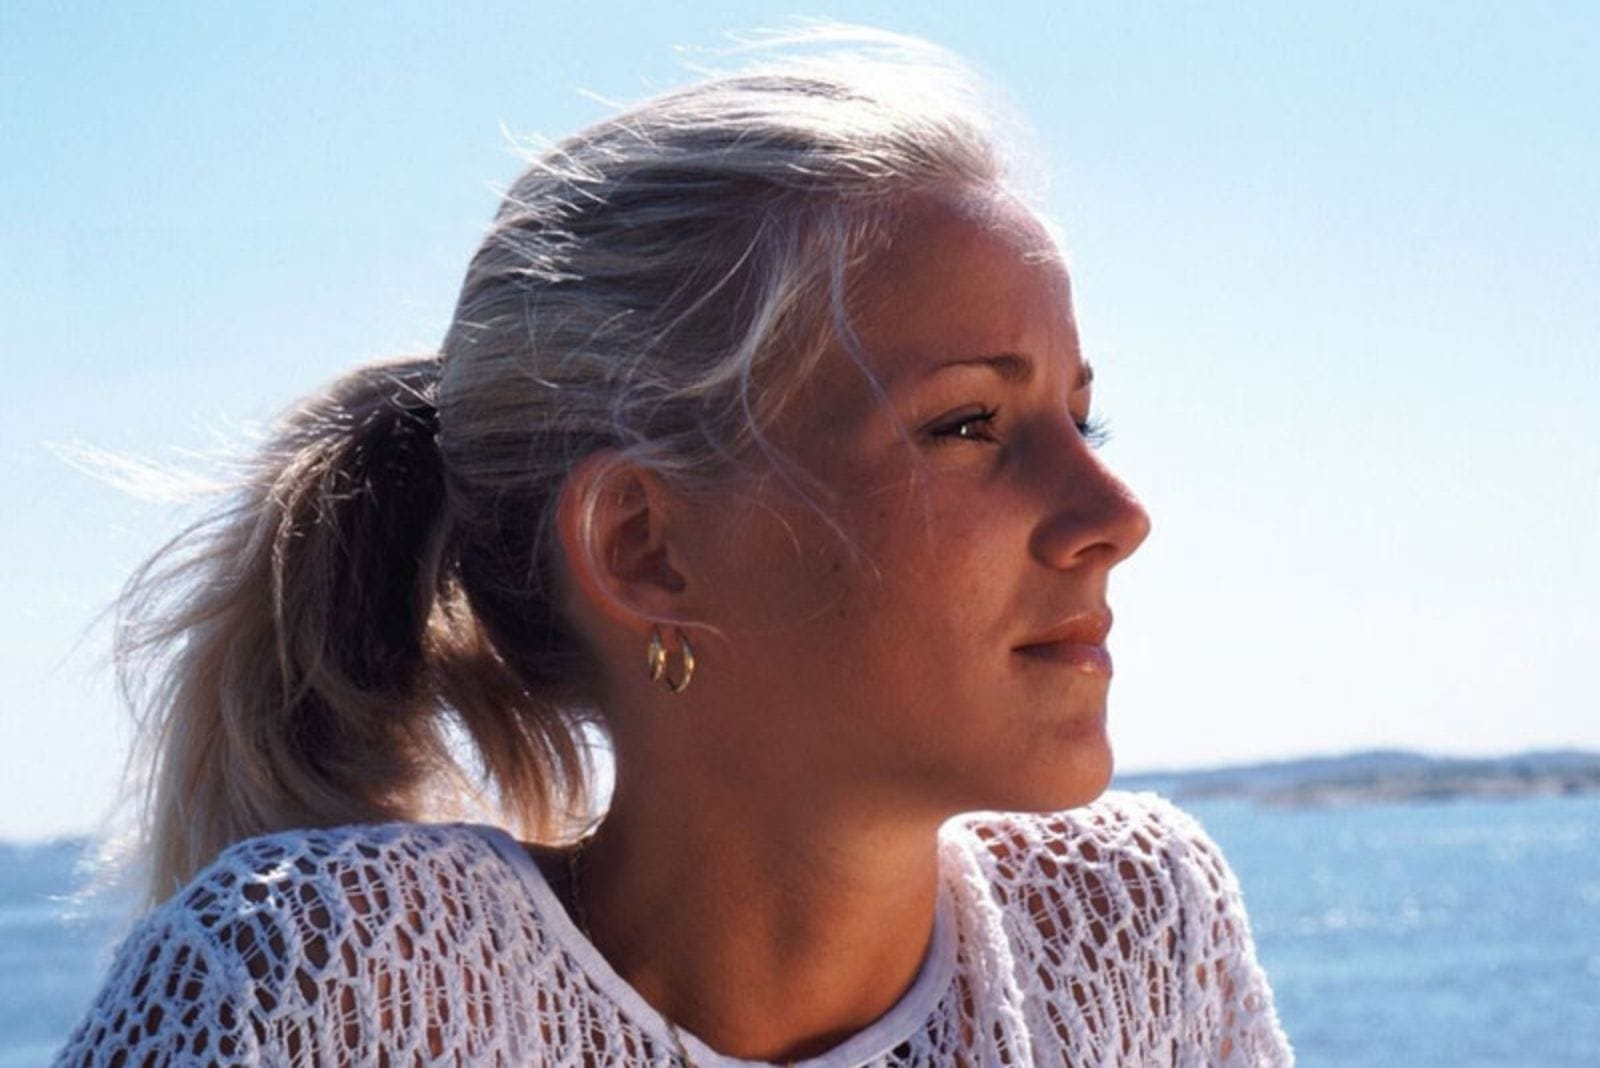 pensive caucasian woman in a close up photography near the body of water